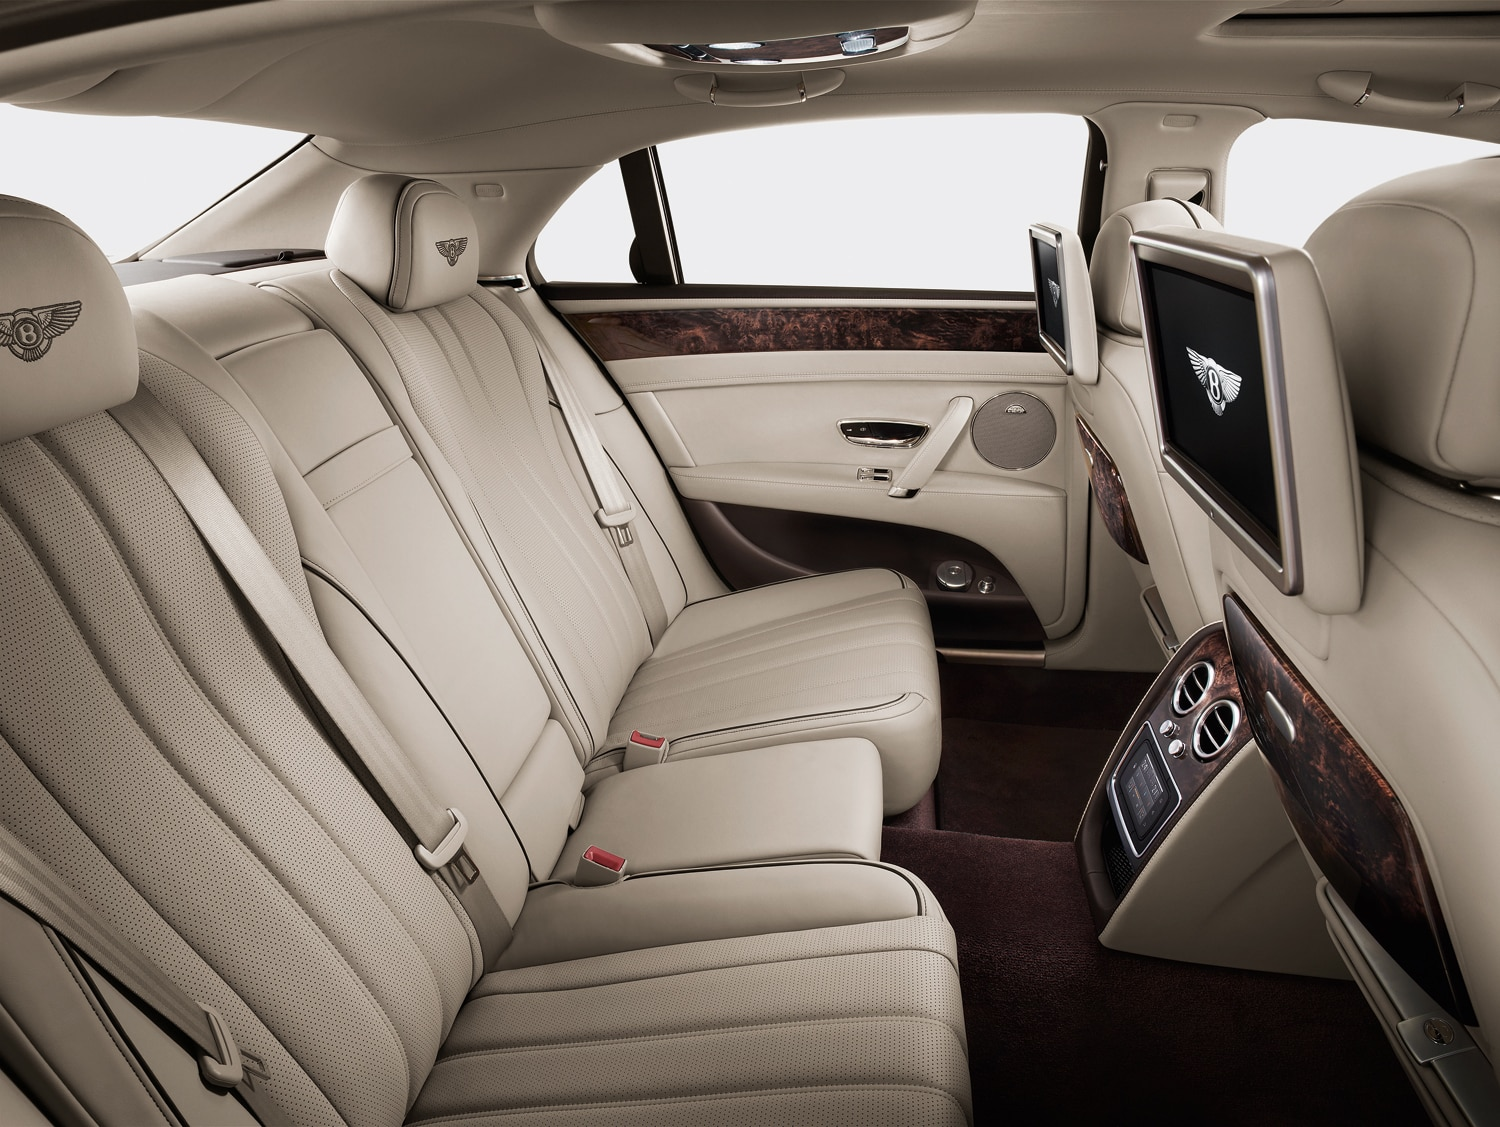 First Look: 2014 Bentley Flying Spur - Automobile Magazine